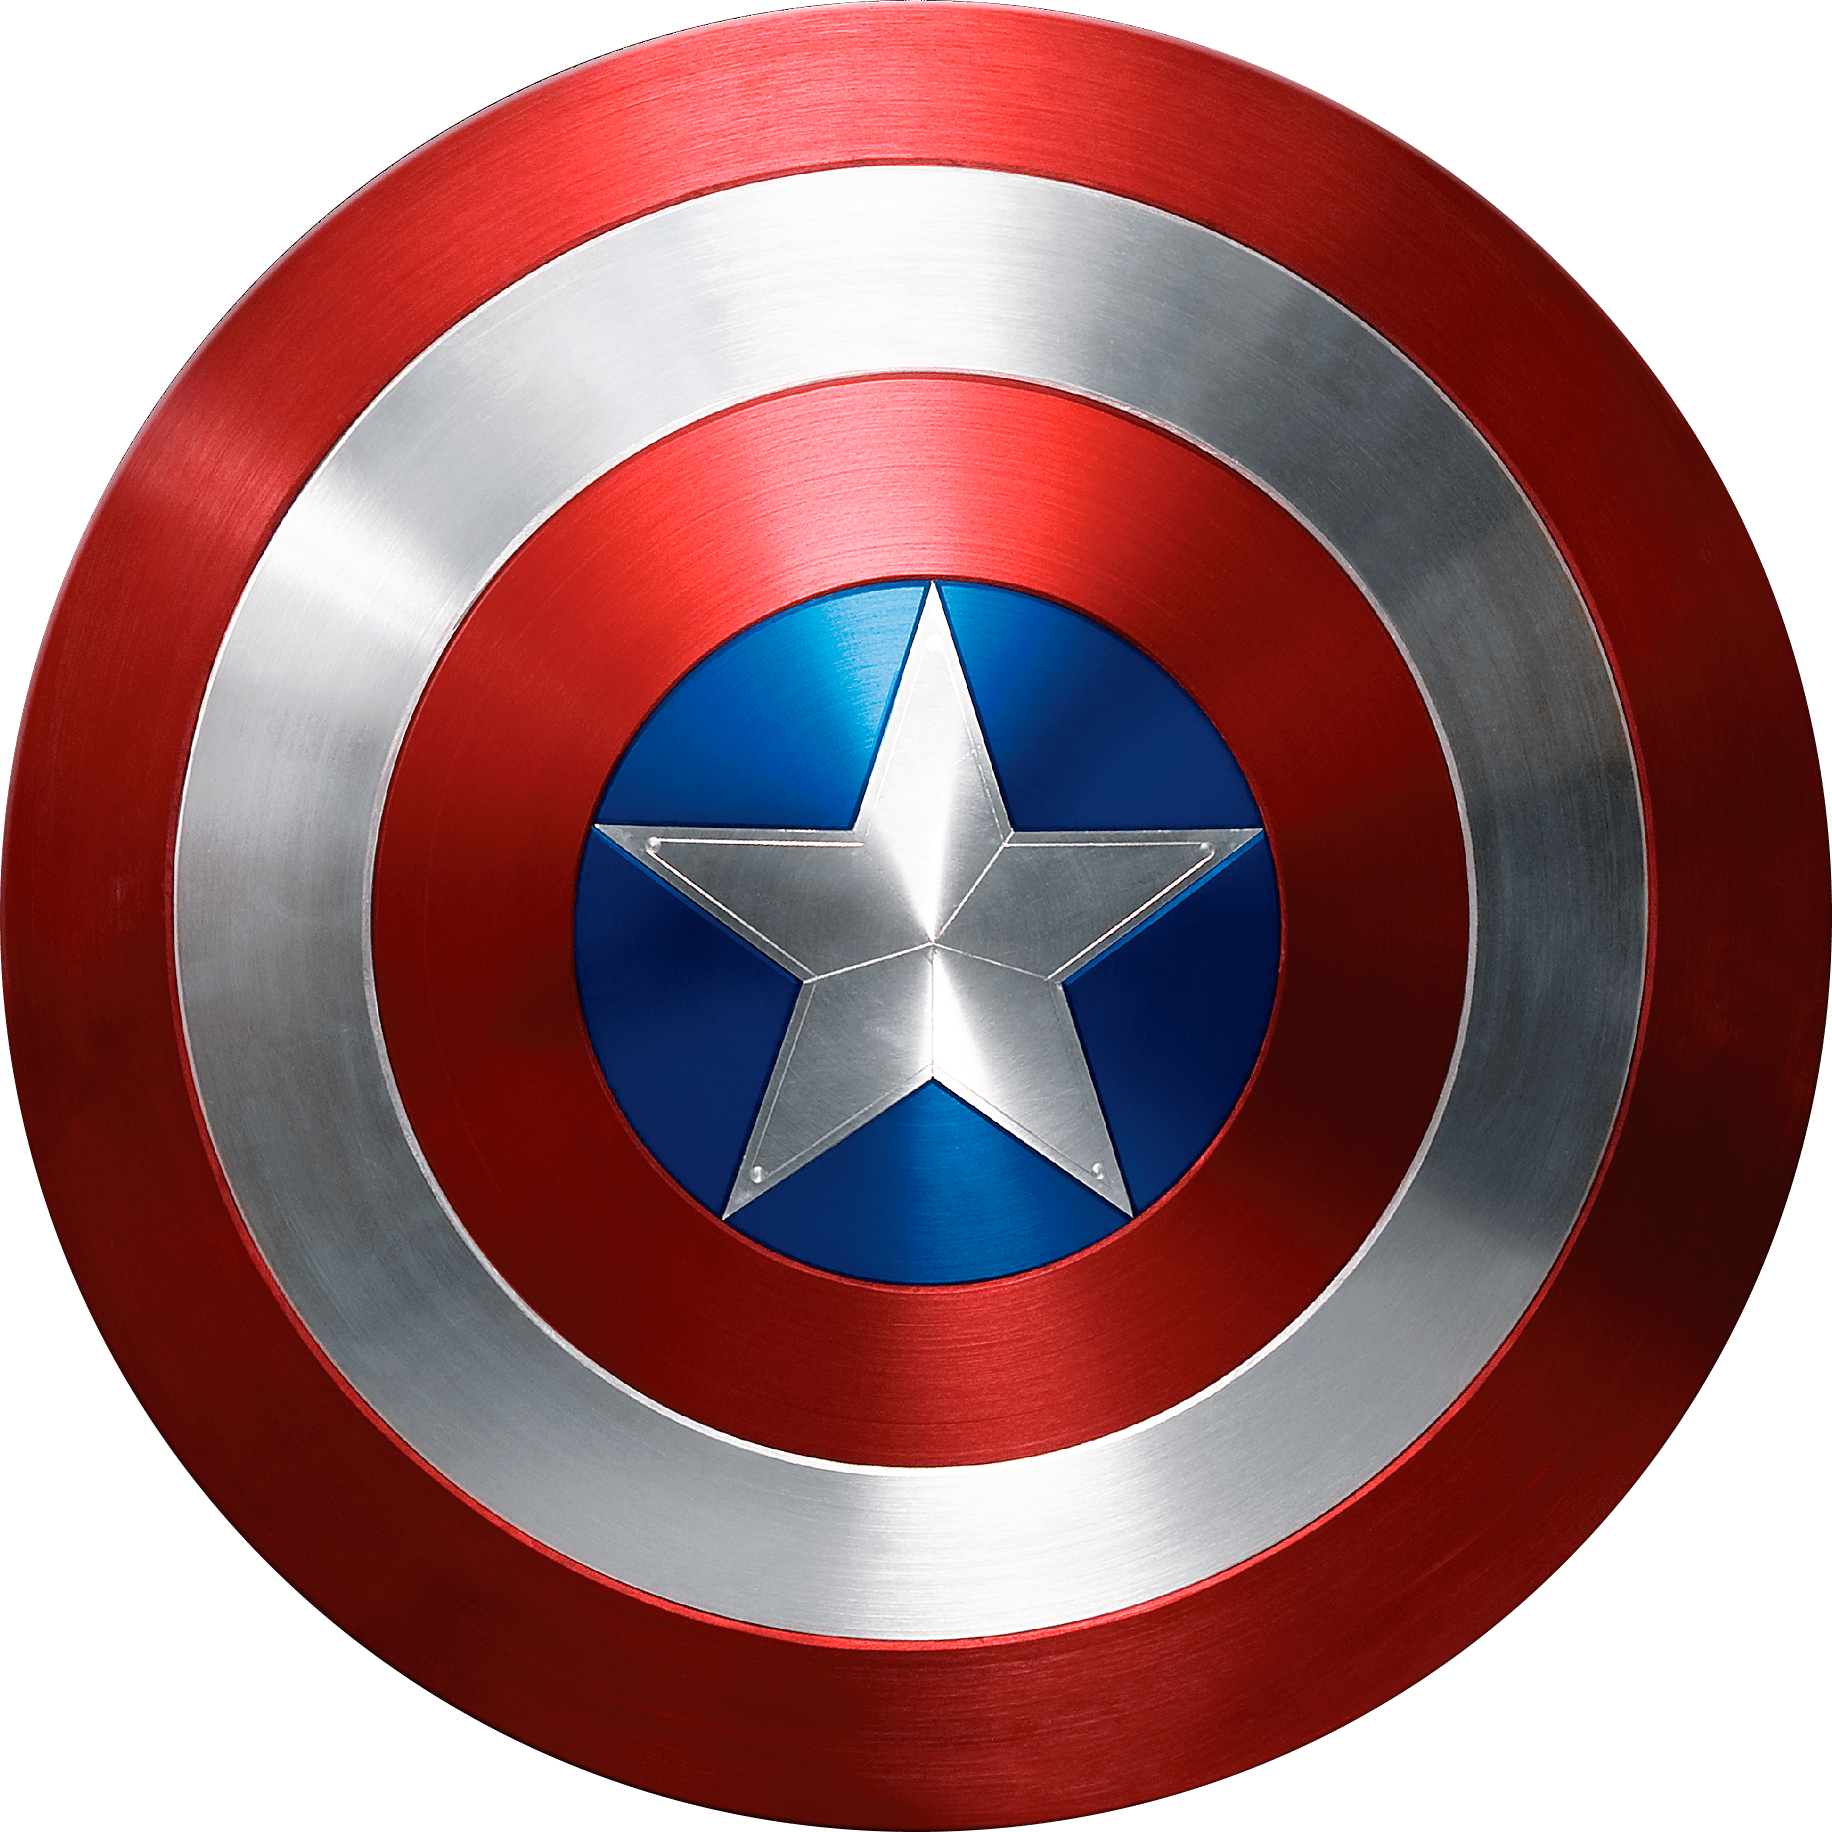 Captain America Photorealistic Shield